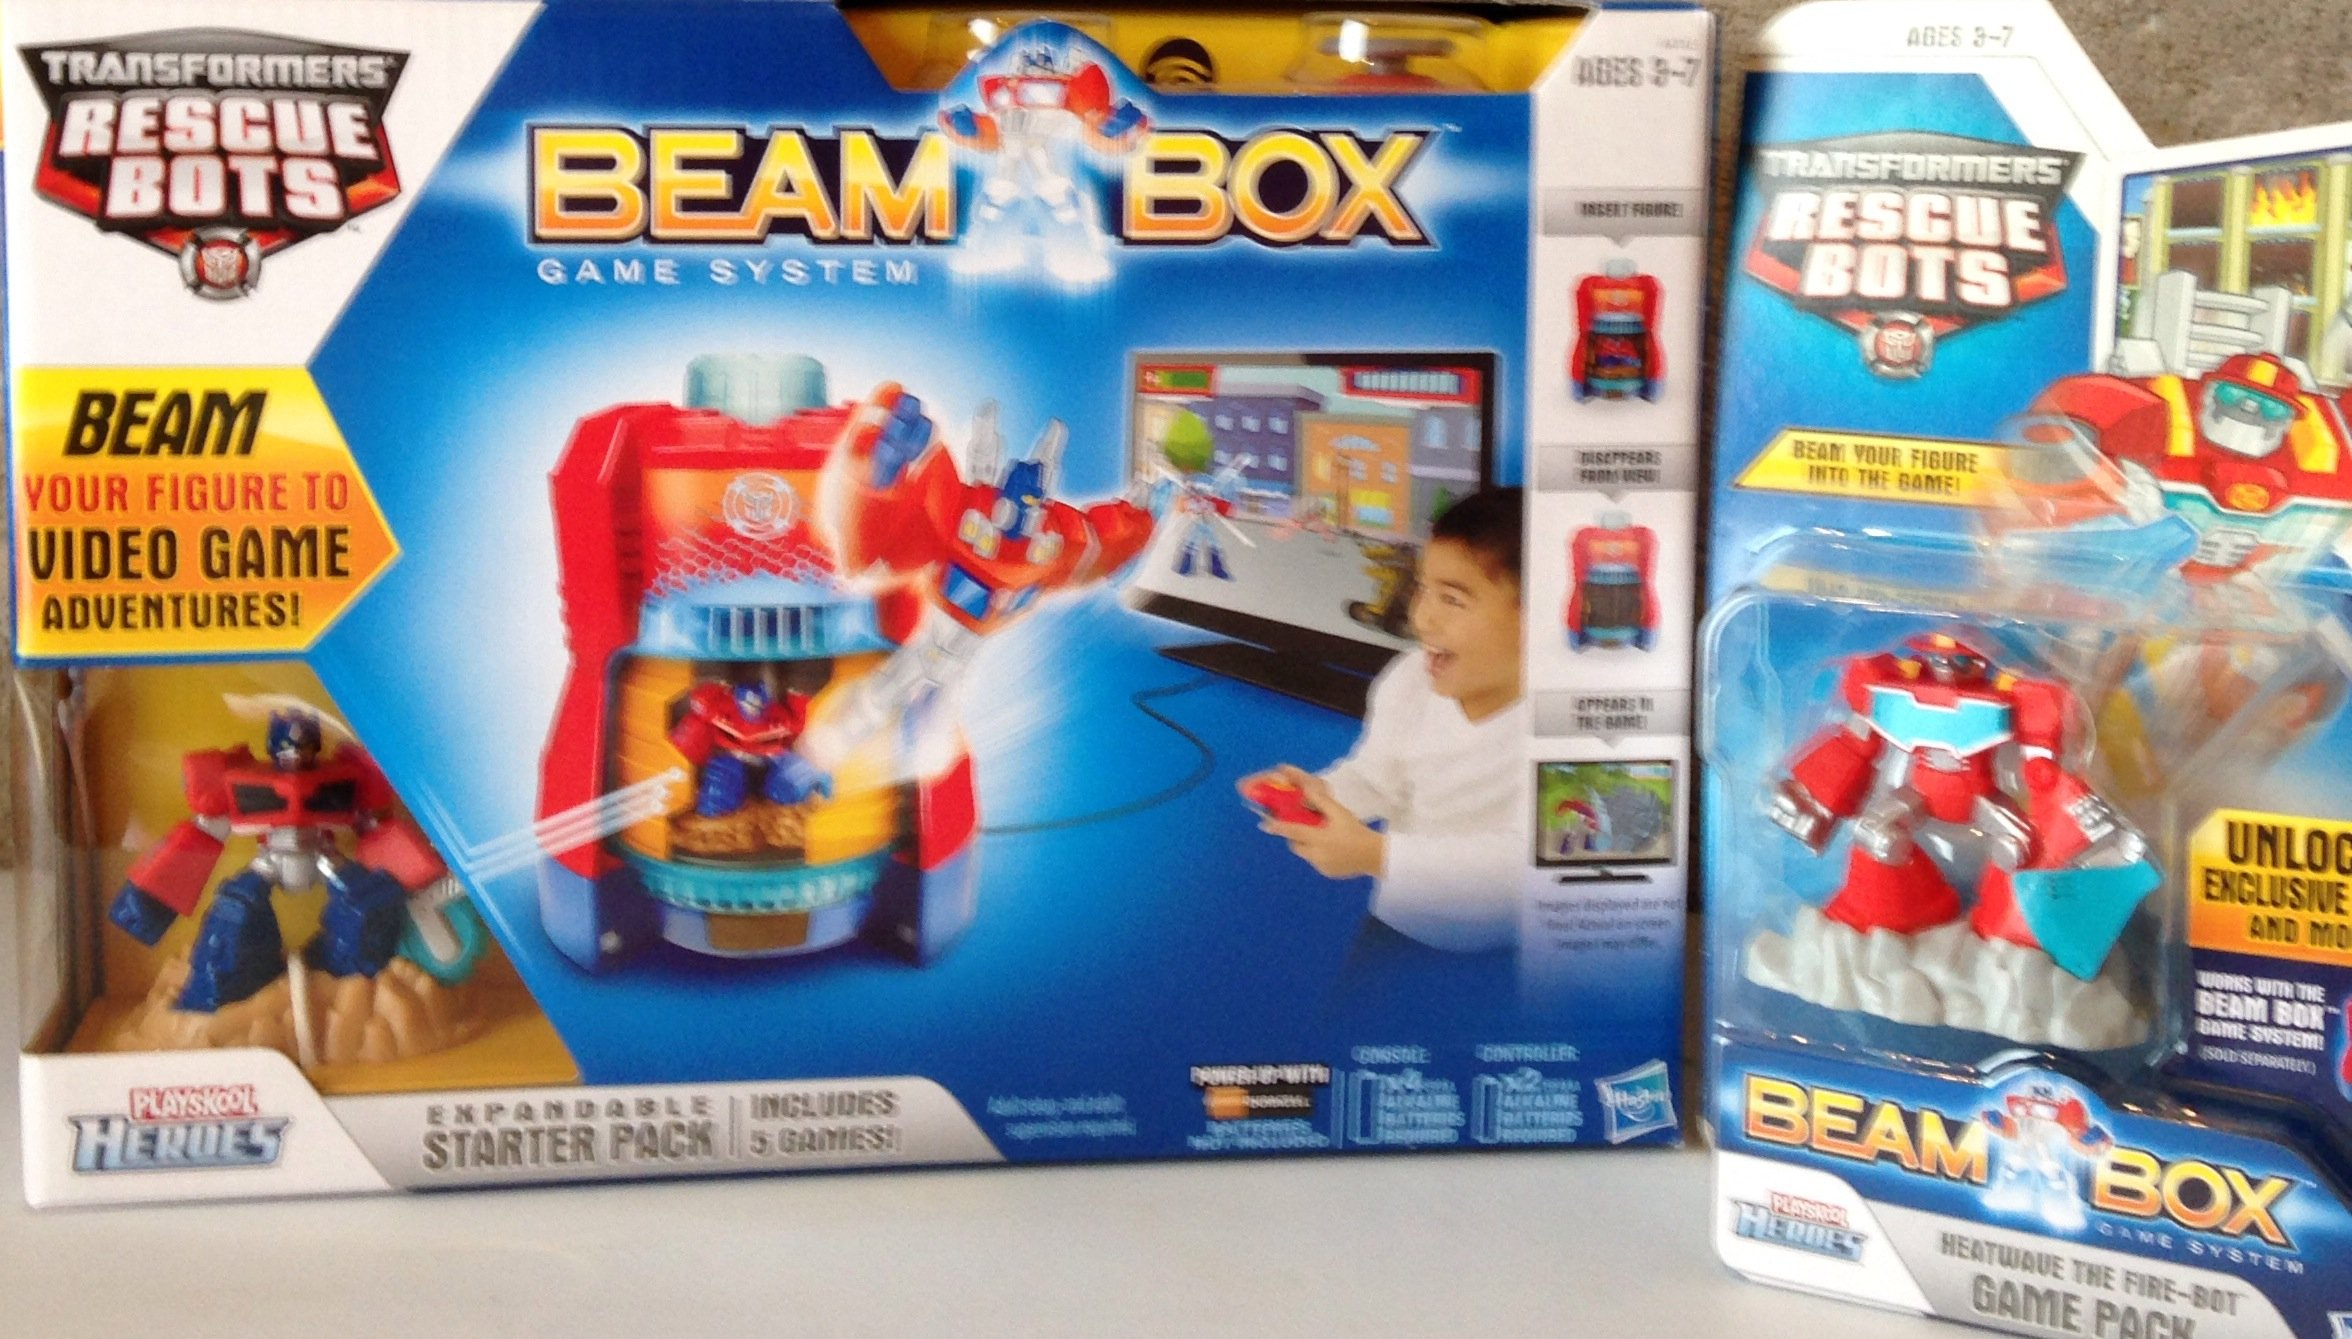 Playskool Heroes Transformers Rescue Bots Beam Box Game System Bundle Including Heatwave Rescue Bots Game Pack